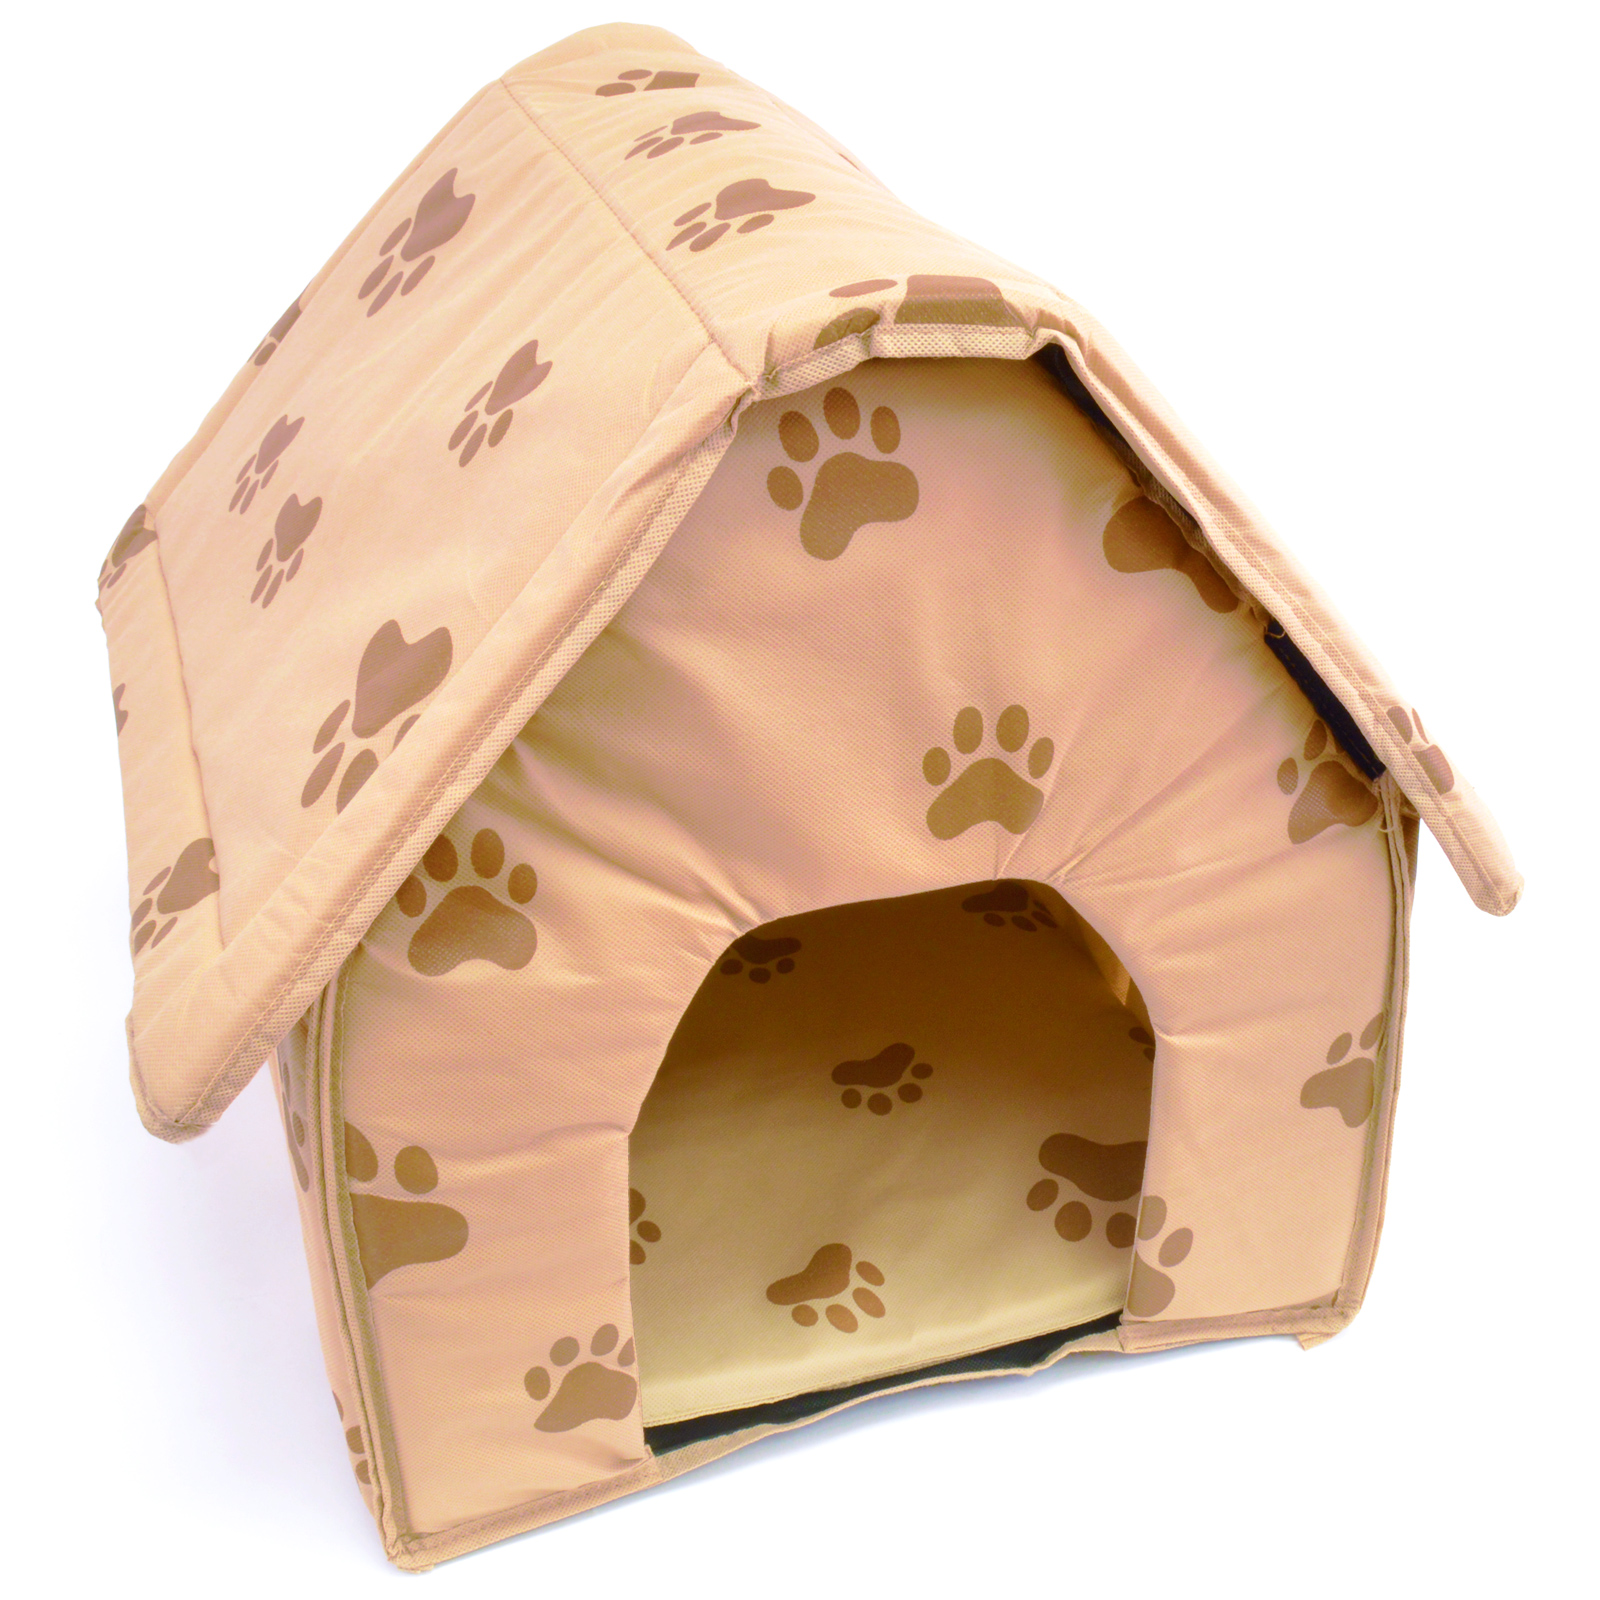 Indoor dog houses - Portable Travel Dog House Folding Pet Kennel Soft Cat Puppy Indoor Outdoor Bed